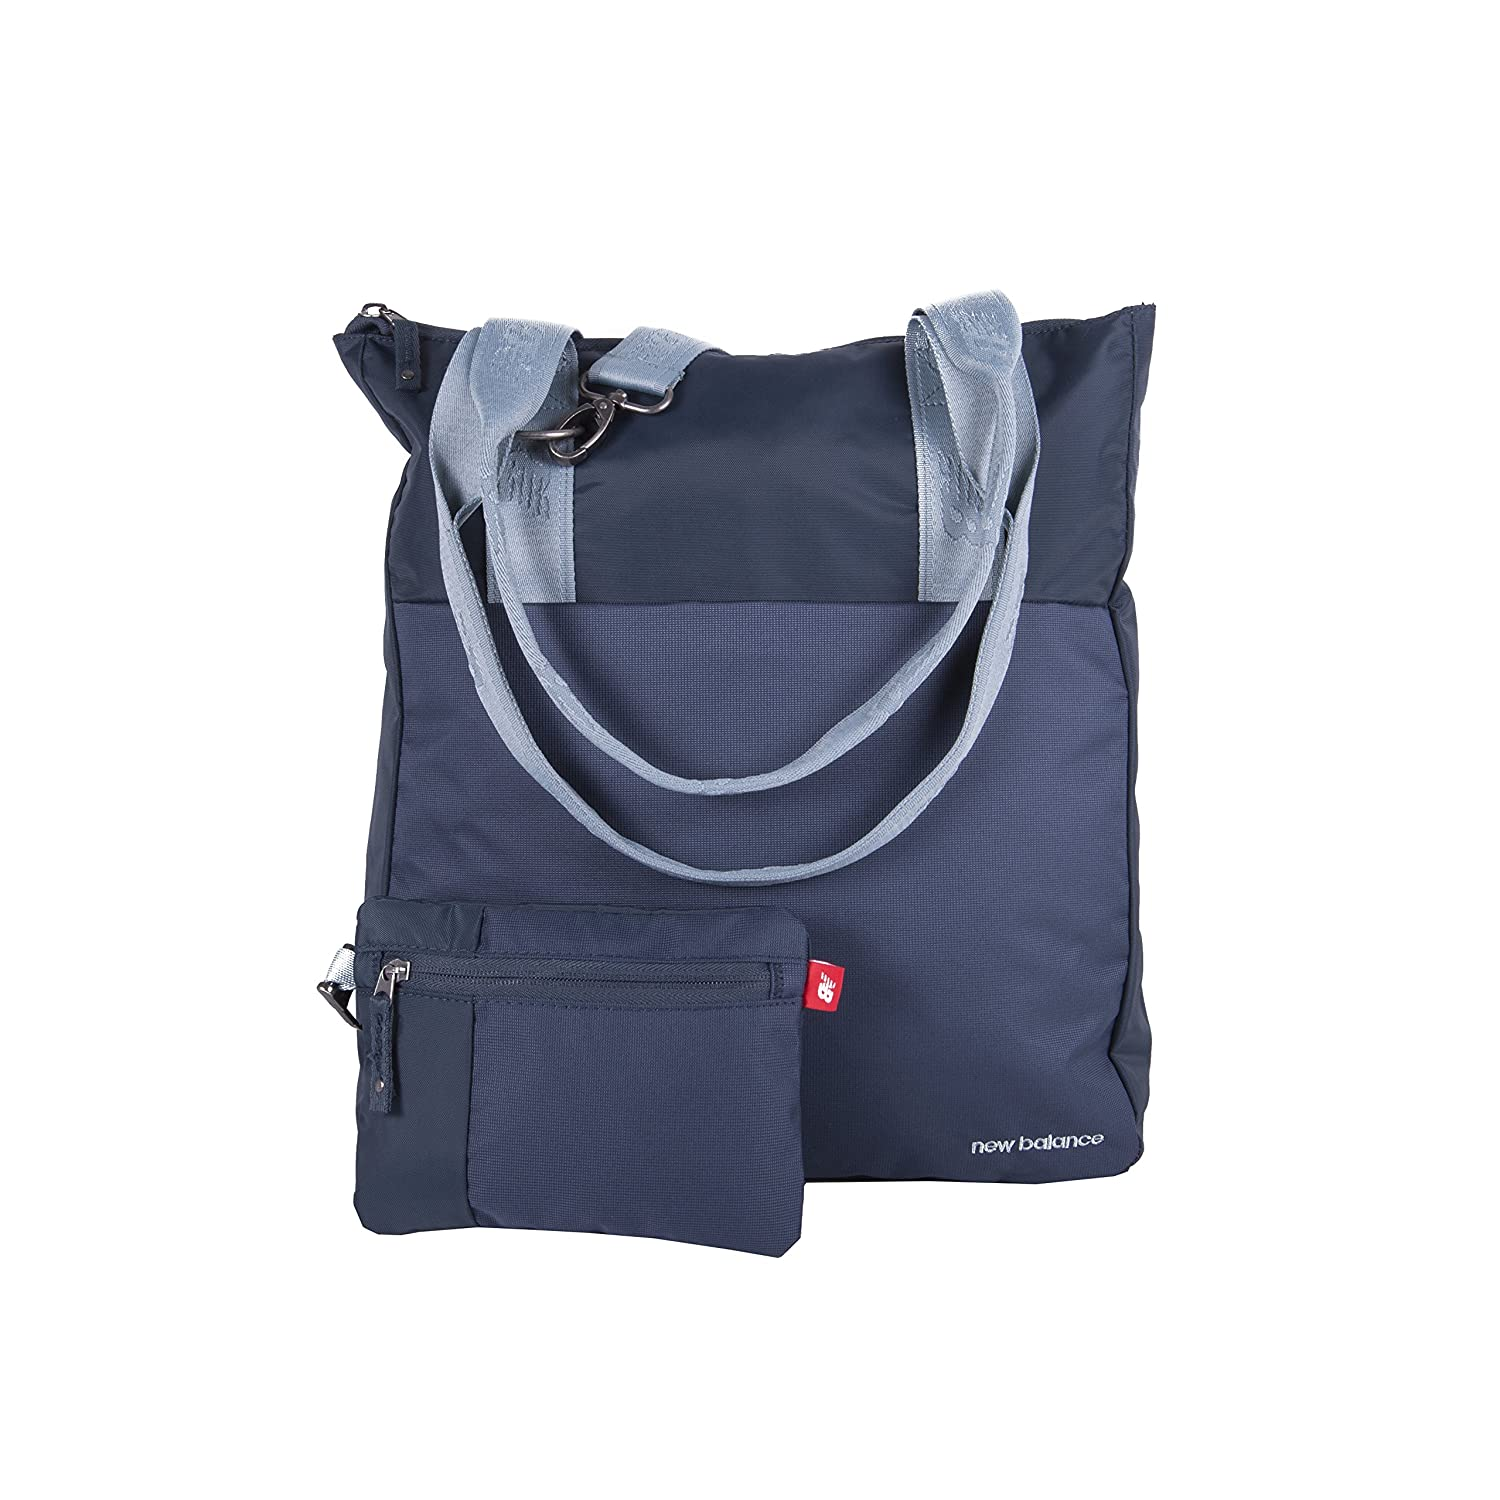 New Balance Unisex Lse Zip Pouch Tote Bag, Black, One Size  Amazon.co.uk   Sports   Outdoors bece7d2163